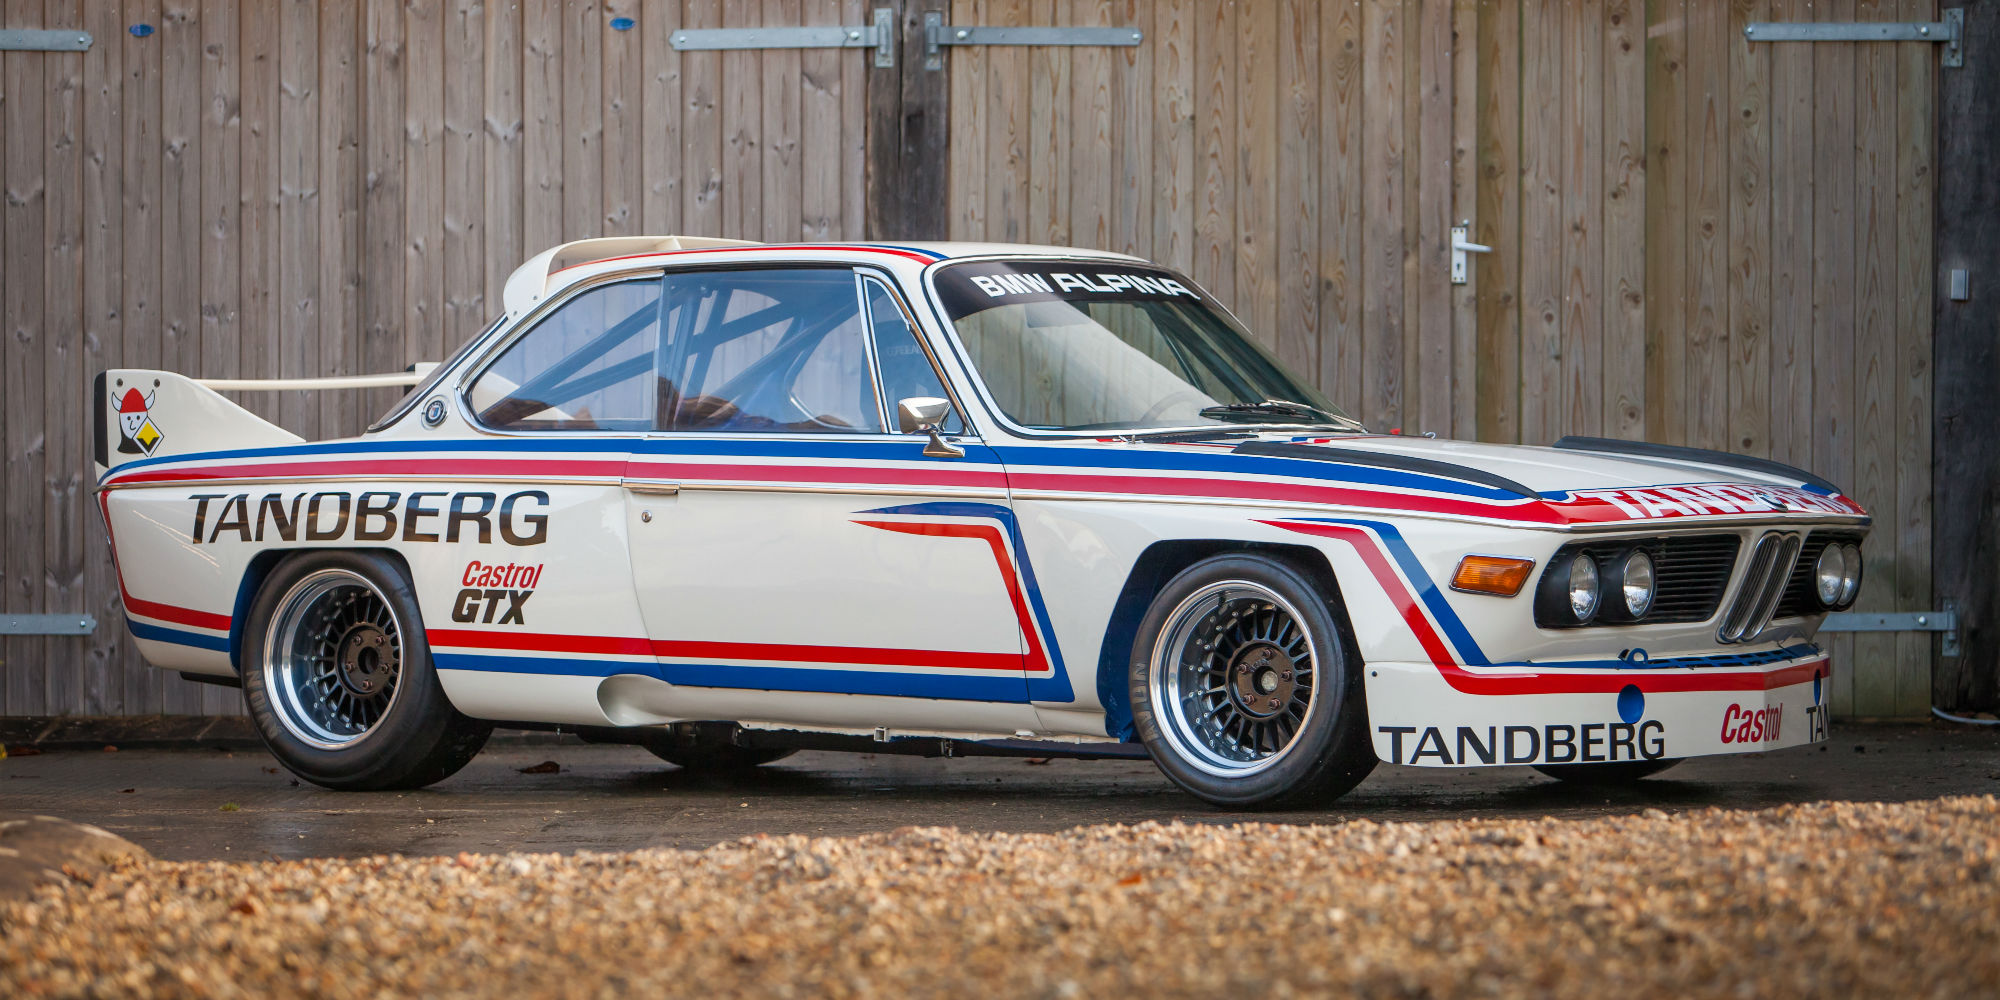 The Ex – Alpina Works, Multiple Championship Winning 1969 BMW 2800CS, Upgraded in 1974 to Alpina 3.0 CSL Group 2